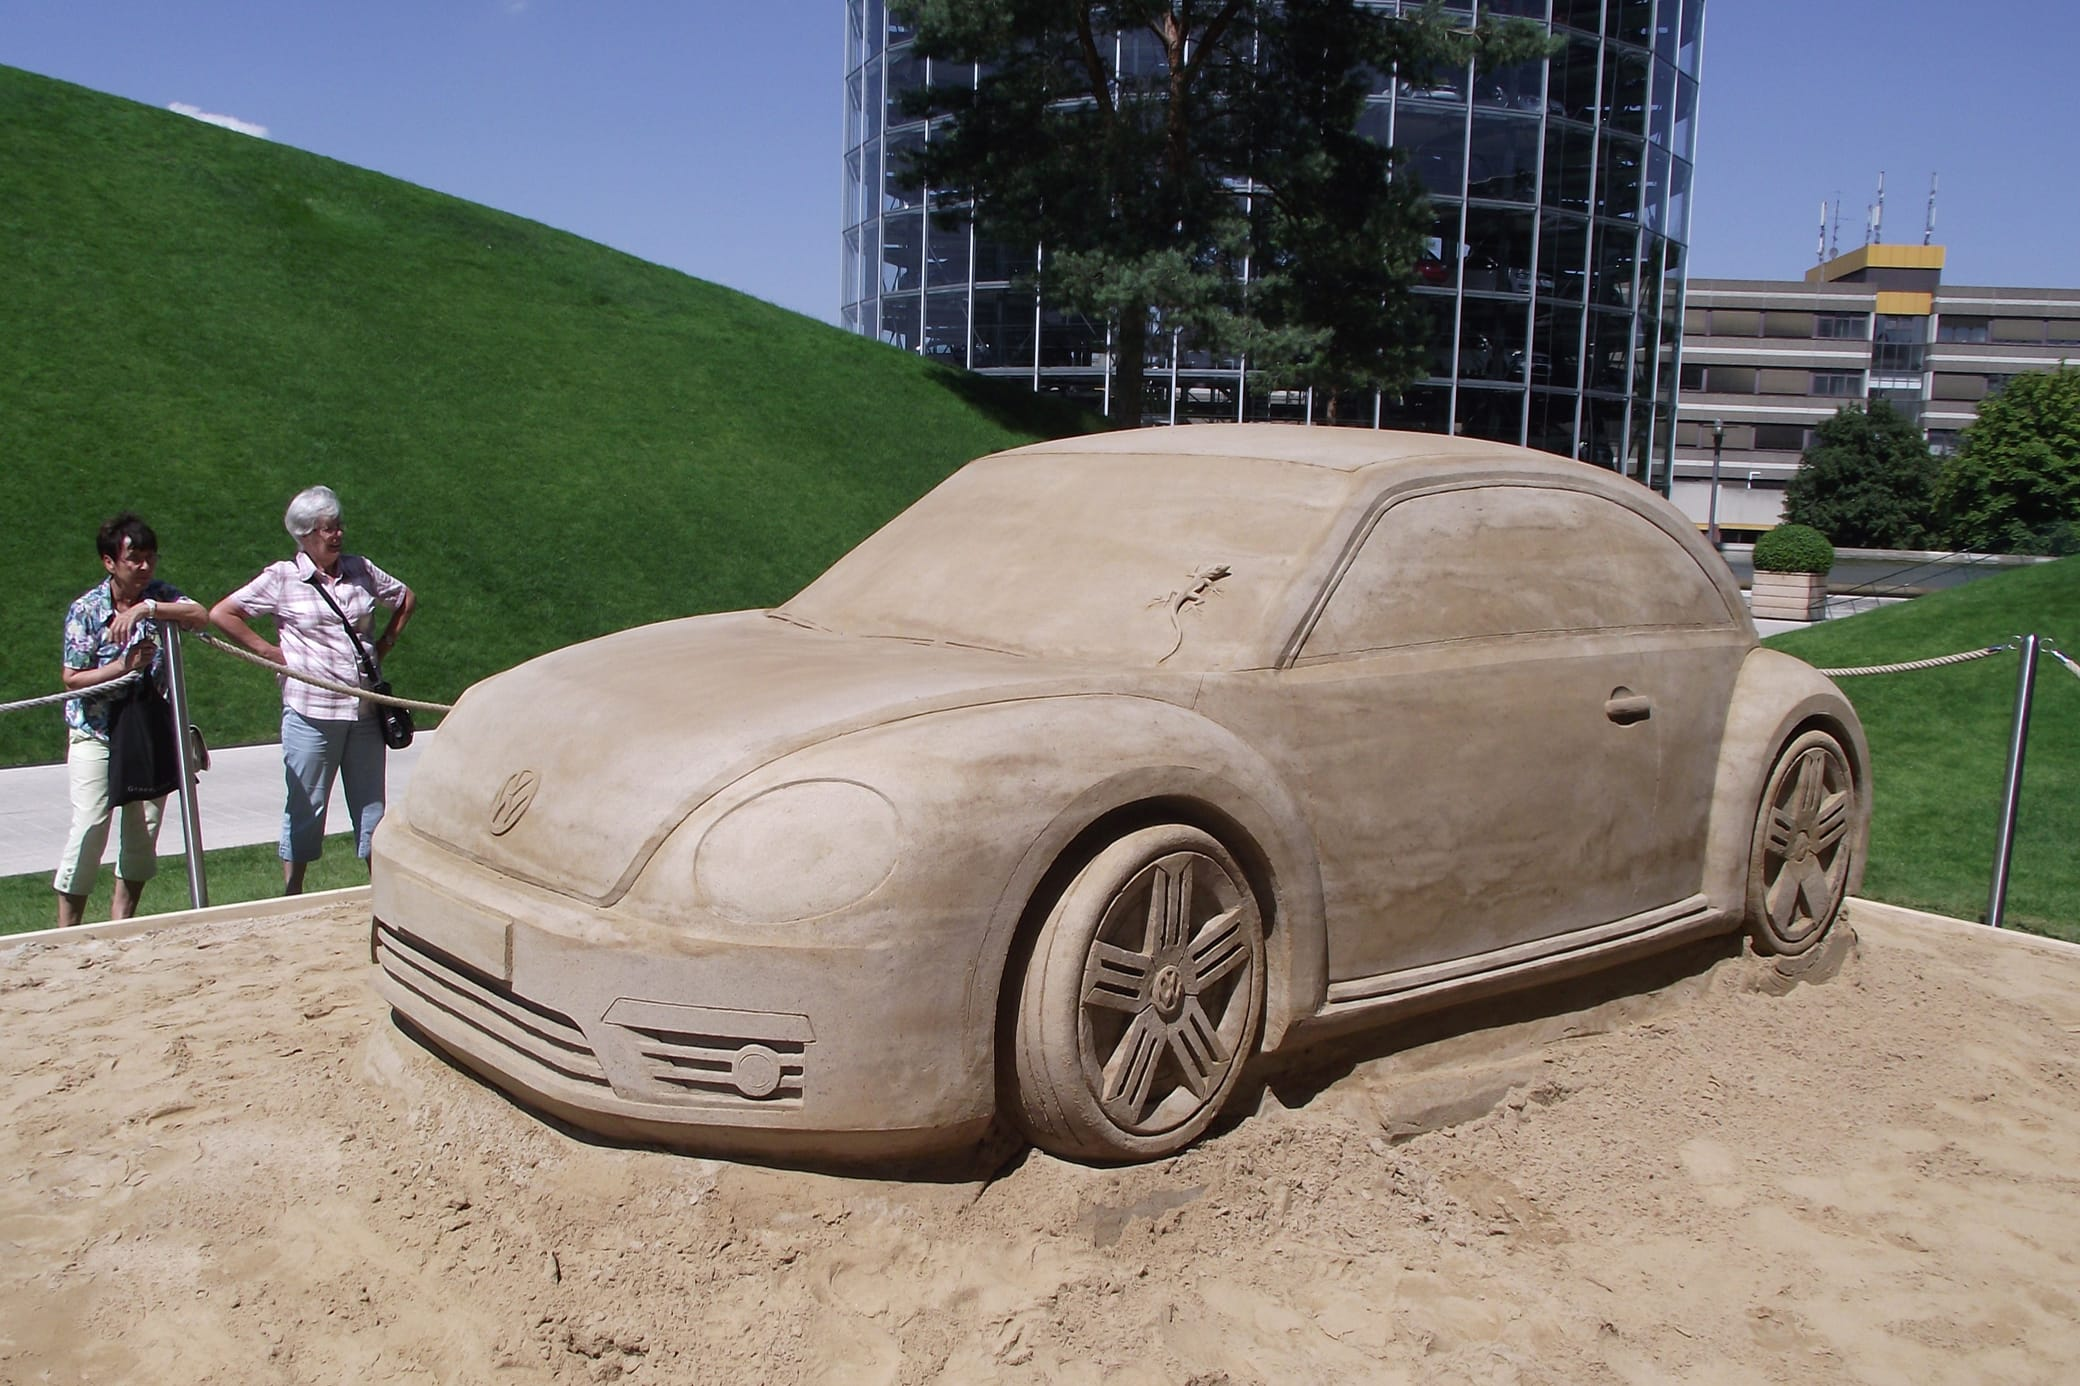 Sand sculptures as a marketing instrument